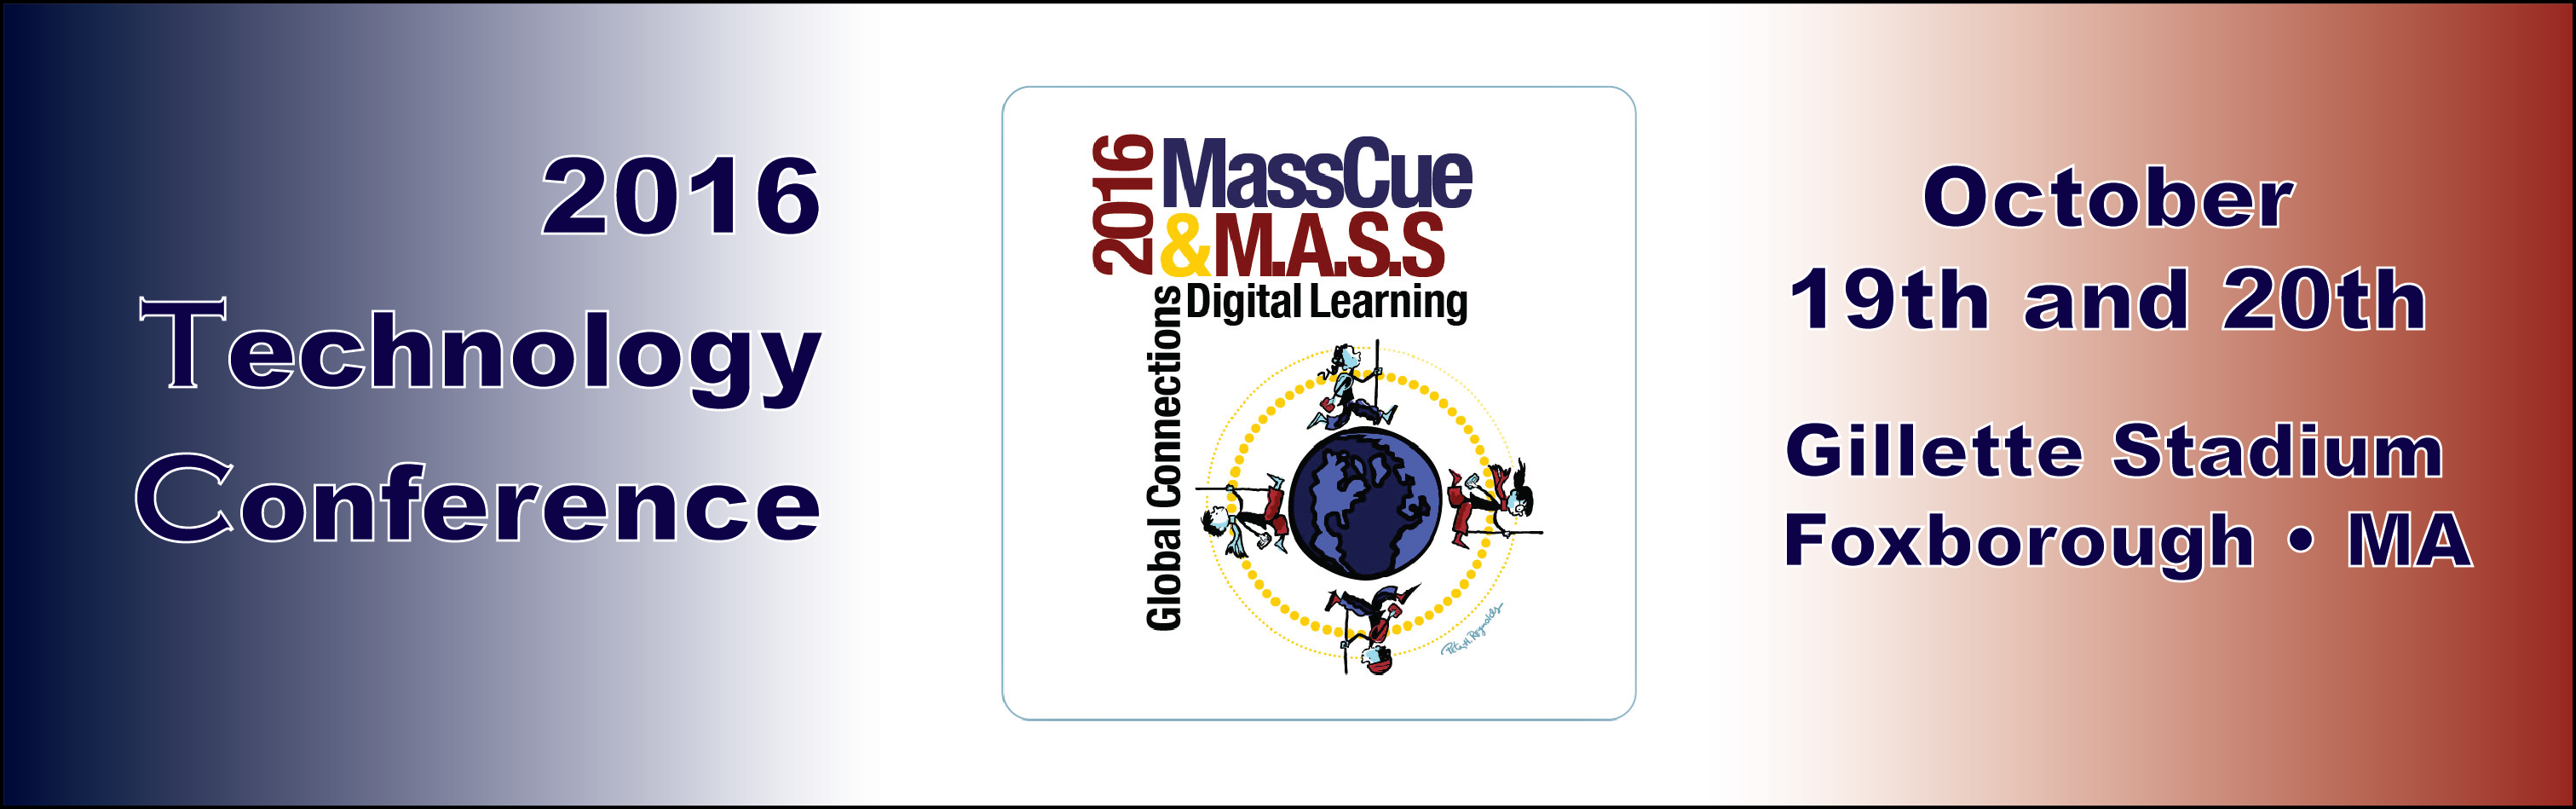 MassCUE/M.A.S.S.  Technology Conference 2016